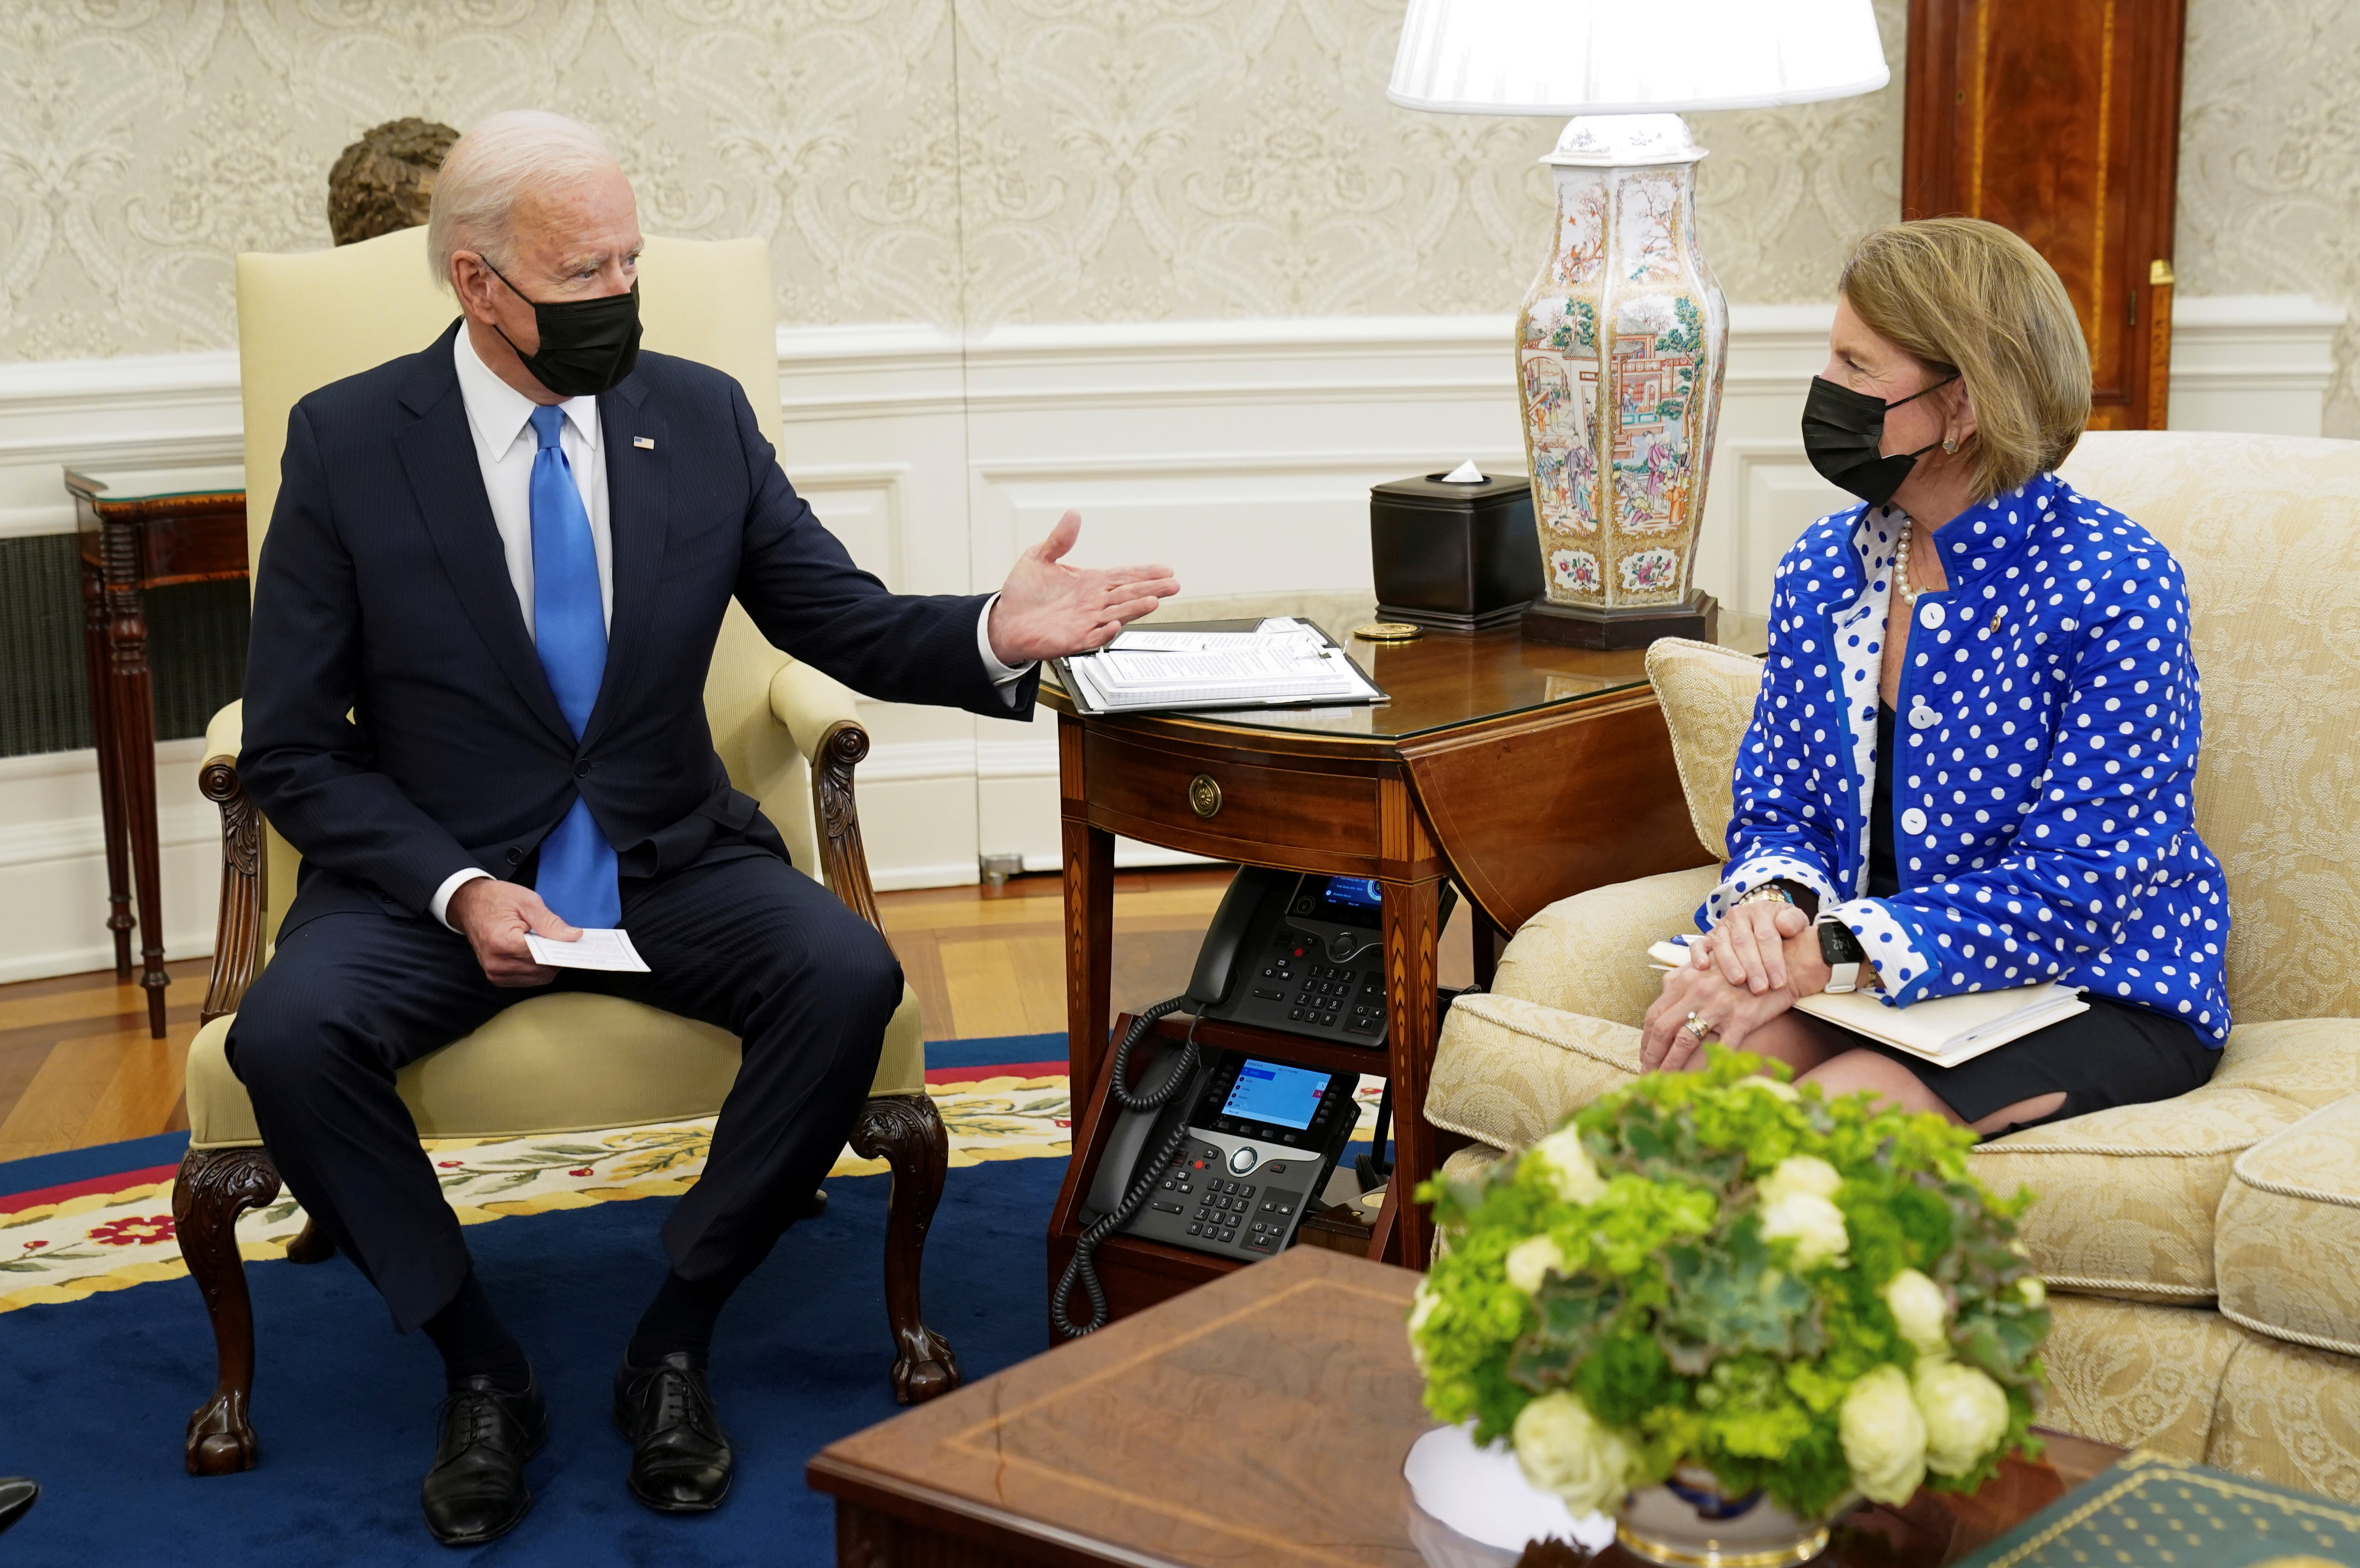 U.S. President Joe Biden gestures toward Senator Shelley Capito (R-WV) during an infrastructure meeting with Republican Senators at the White House in Washington, U.S., May 13, 2021. REUTERS/Kevin Lamarque/File Photo